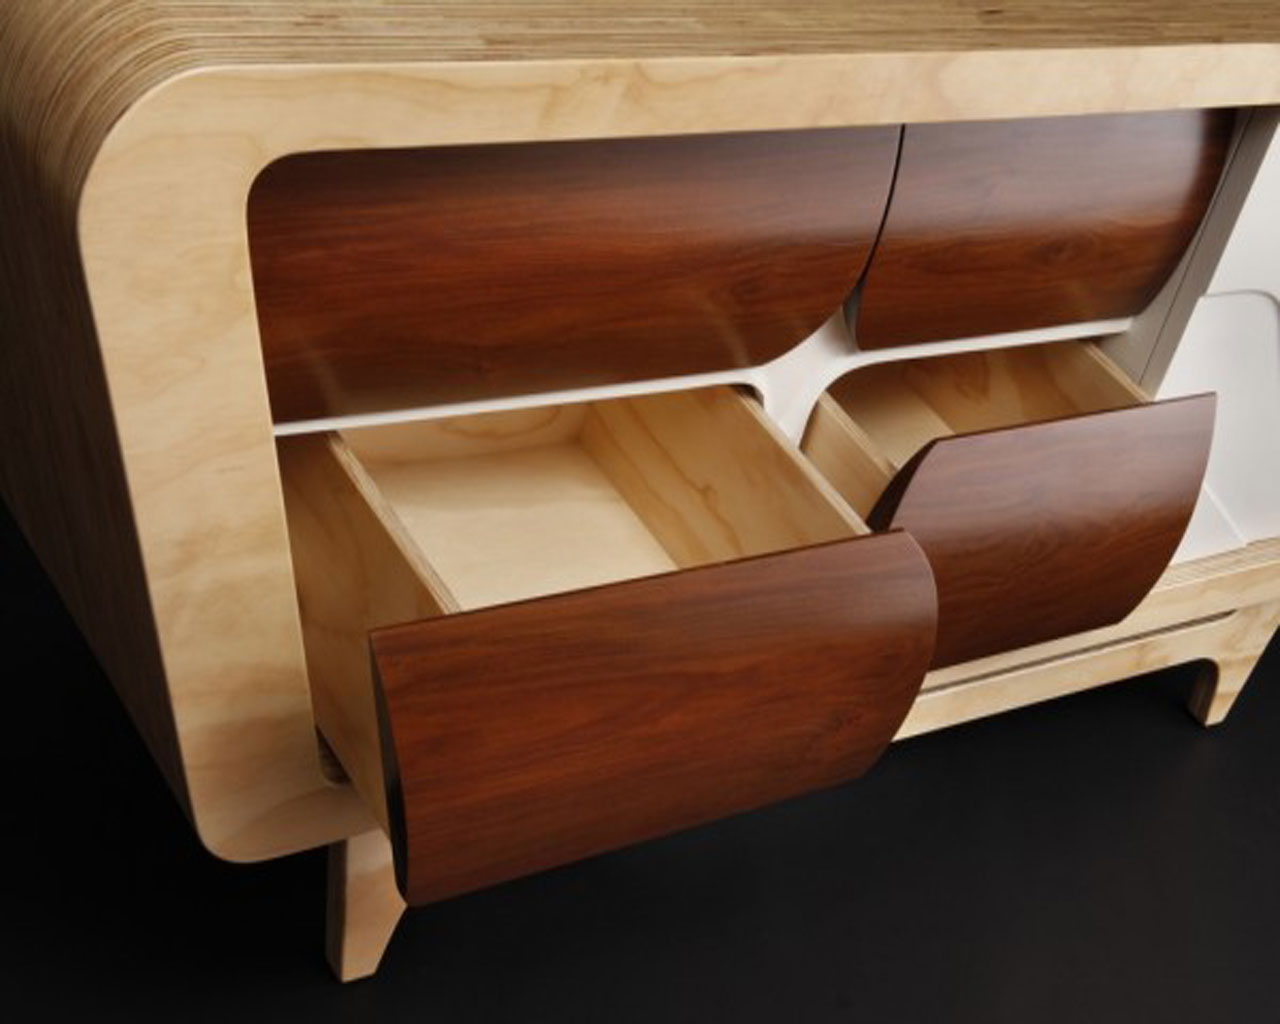 Contemporary Furniture Design 5